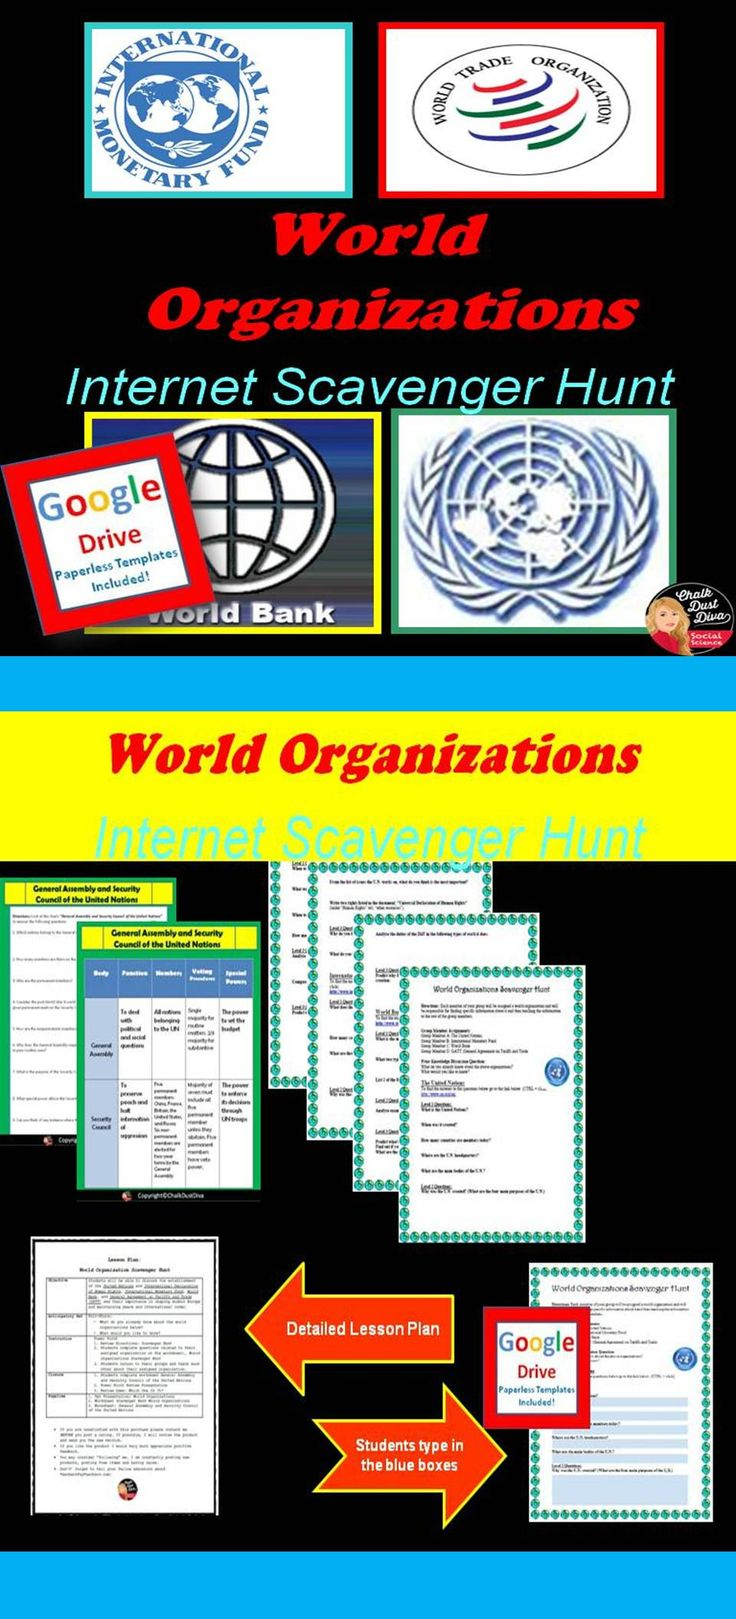 For the activity students will be assigned one of the World Organizations to research (websites are listed) and will have to teach their group members about their organization. Google Docs included! Pin it!